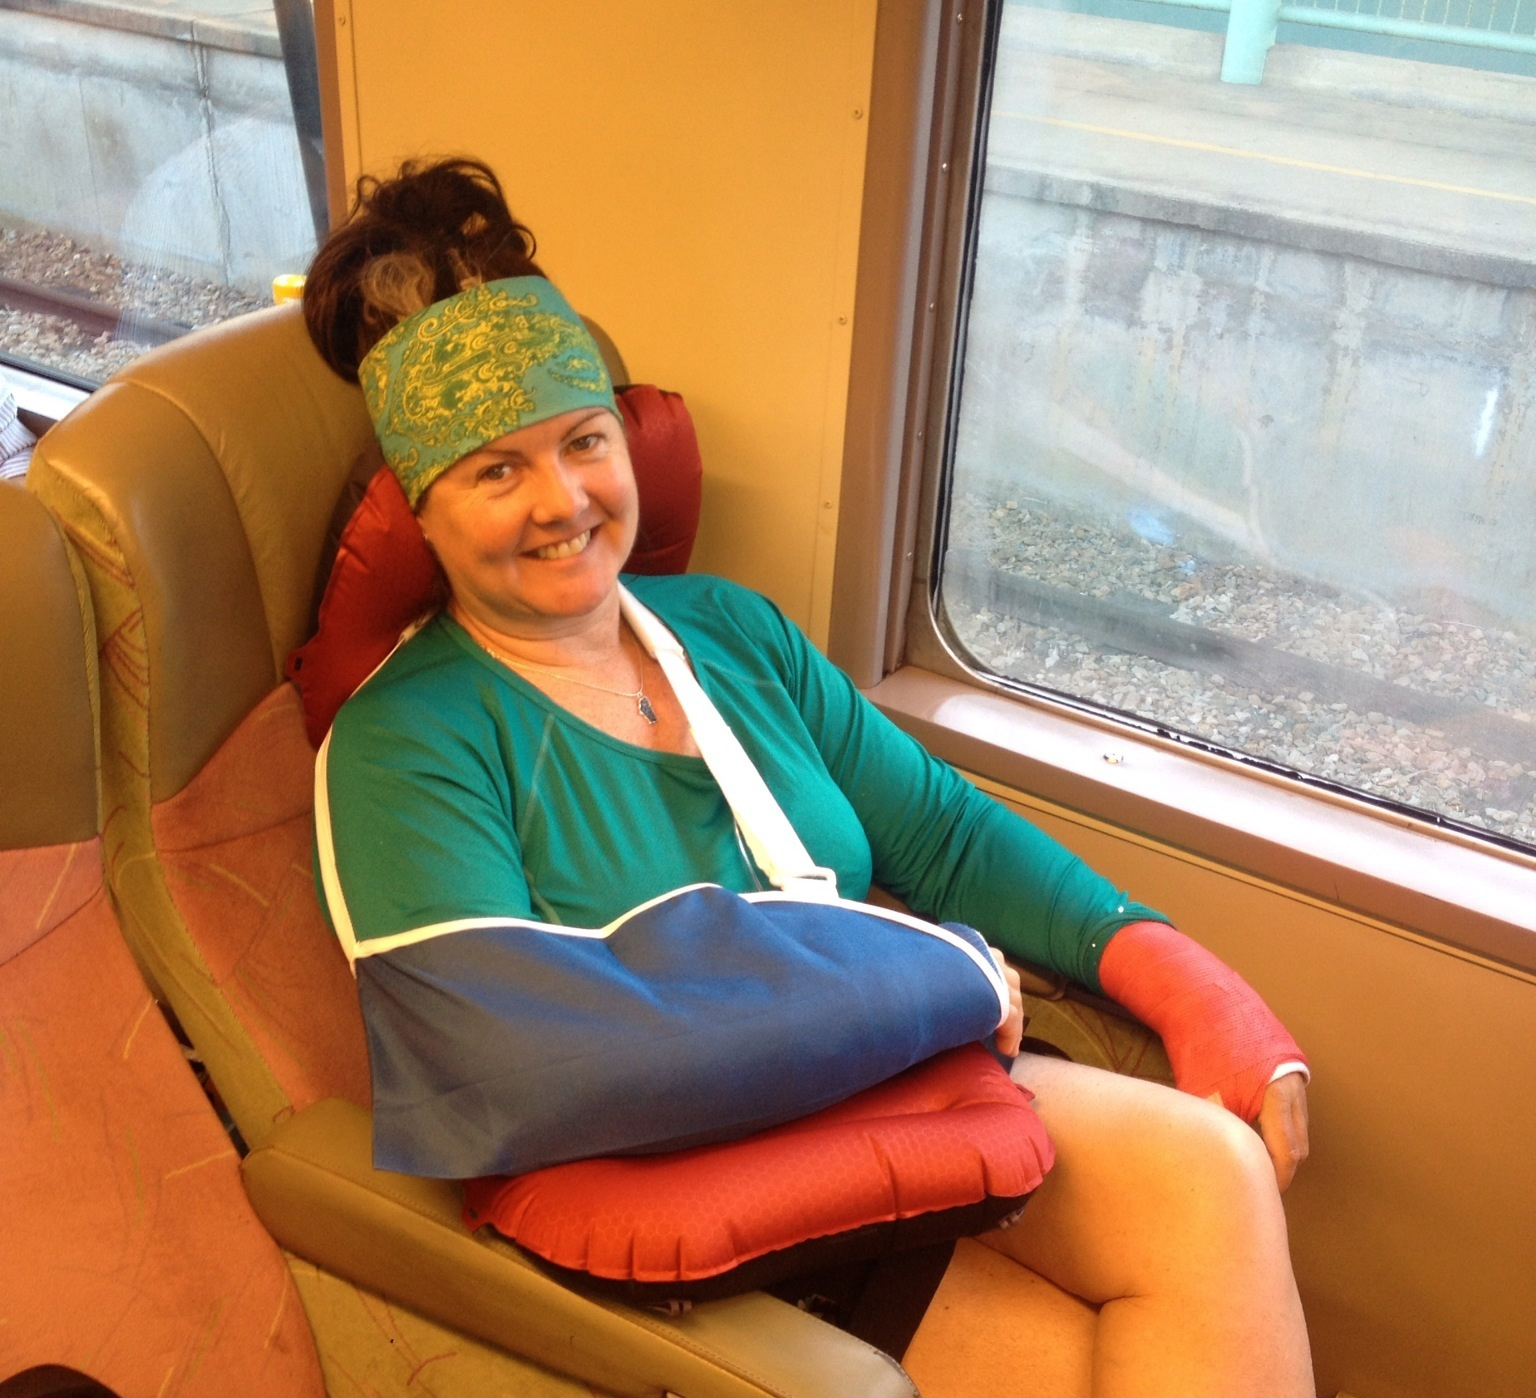 Heading back to Melbourne for surgery, on steel wheels, the train!